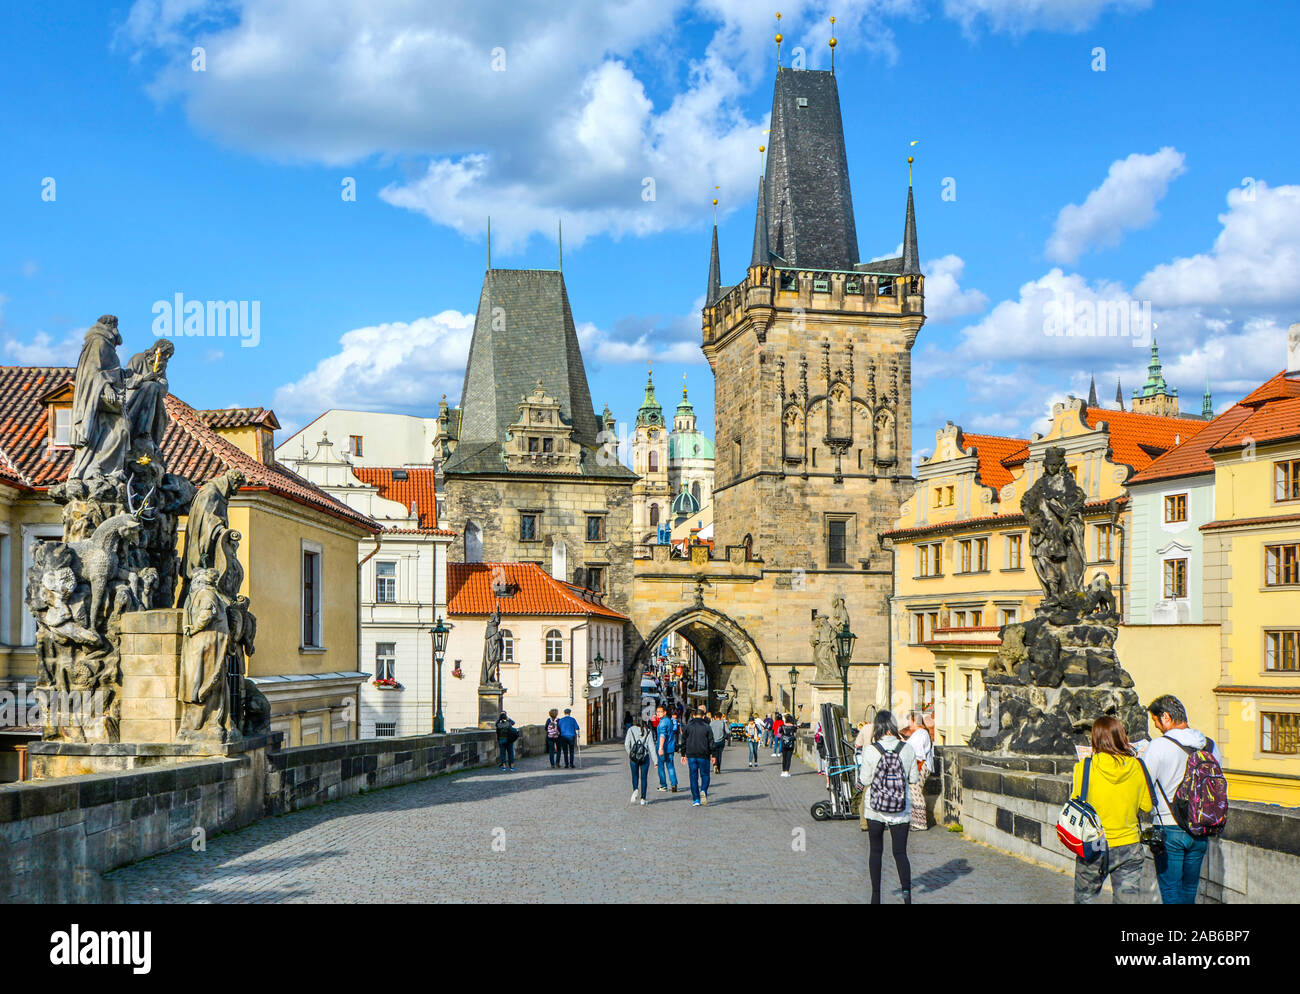 Tourists cross the Charles Bridge on the Path of the Kings leading to the lesser Tower on their way to Prague Castle. Stock Photo